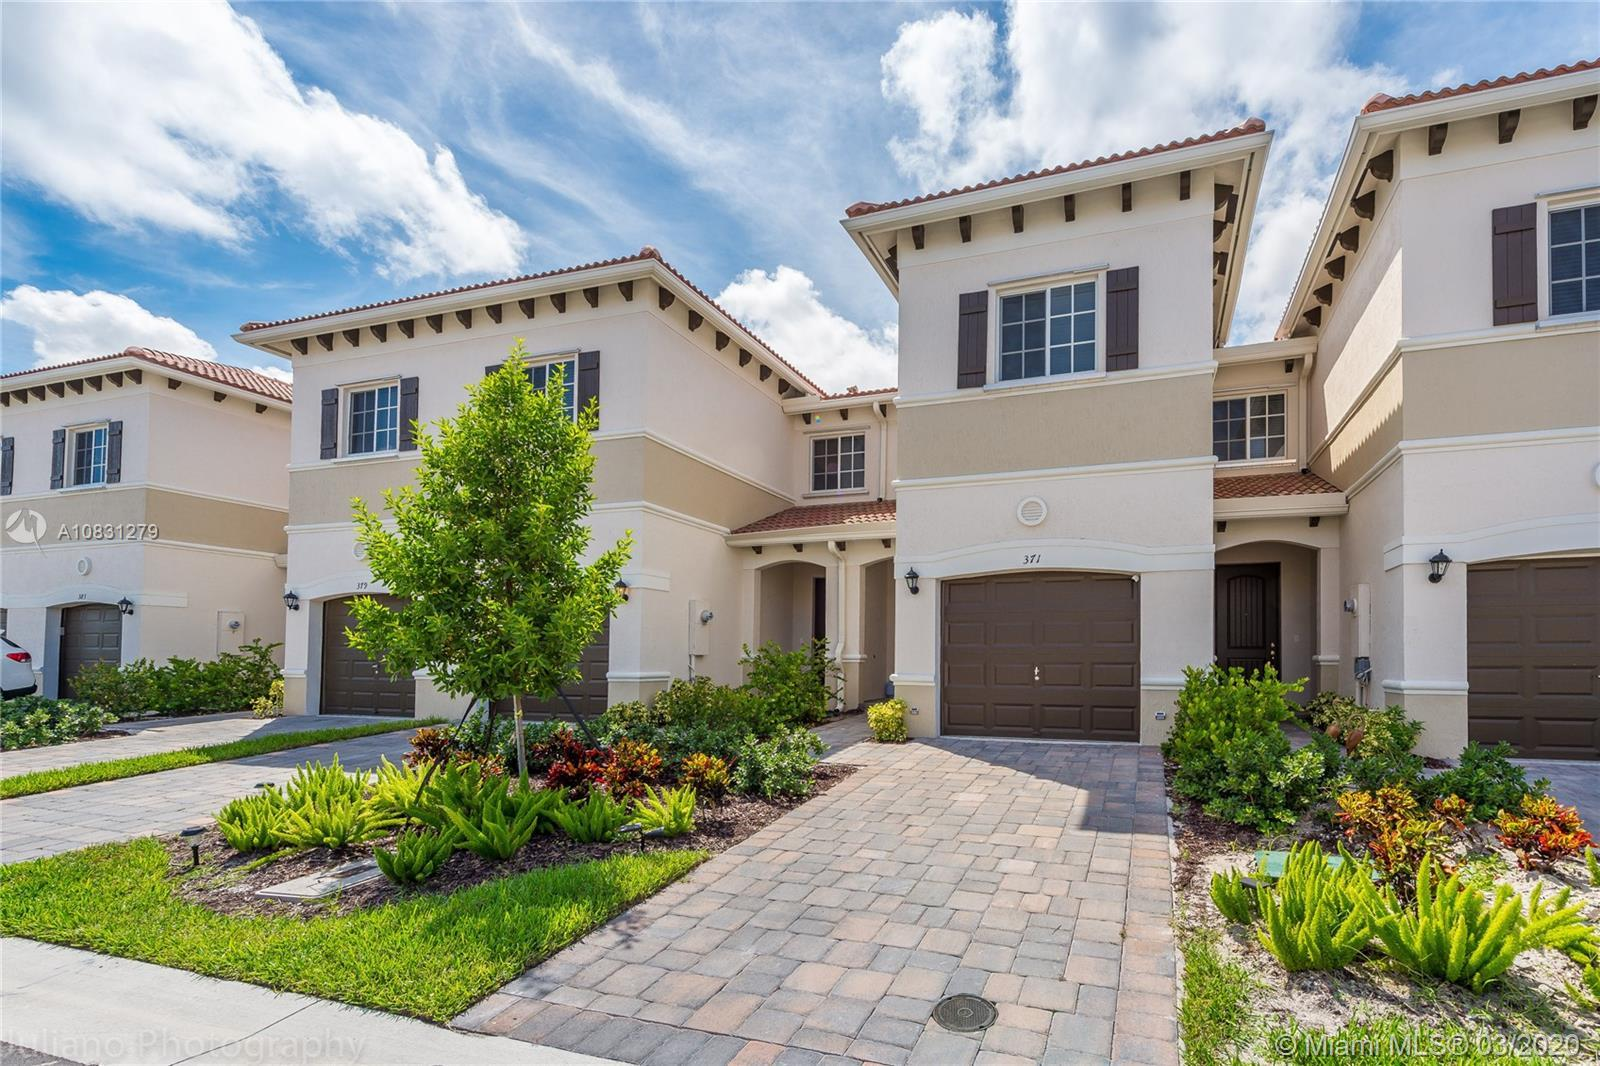 25K PRICE DROP! HOA ONLY $150,00 per month. ---- WITH FURNITURE INCLUDED AMAZING NEW CONSTRUCTION TO